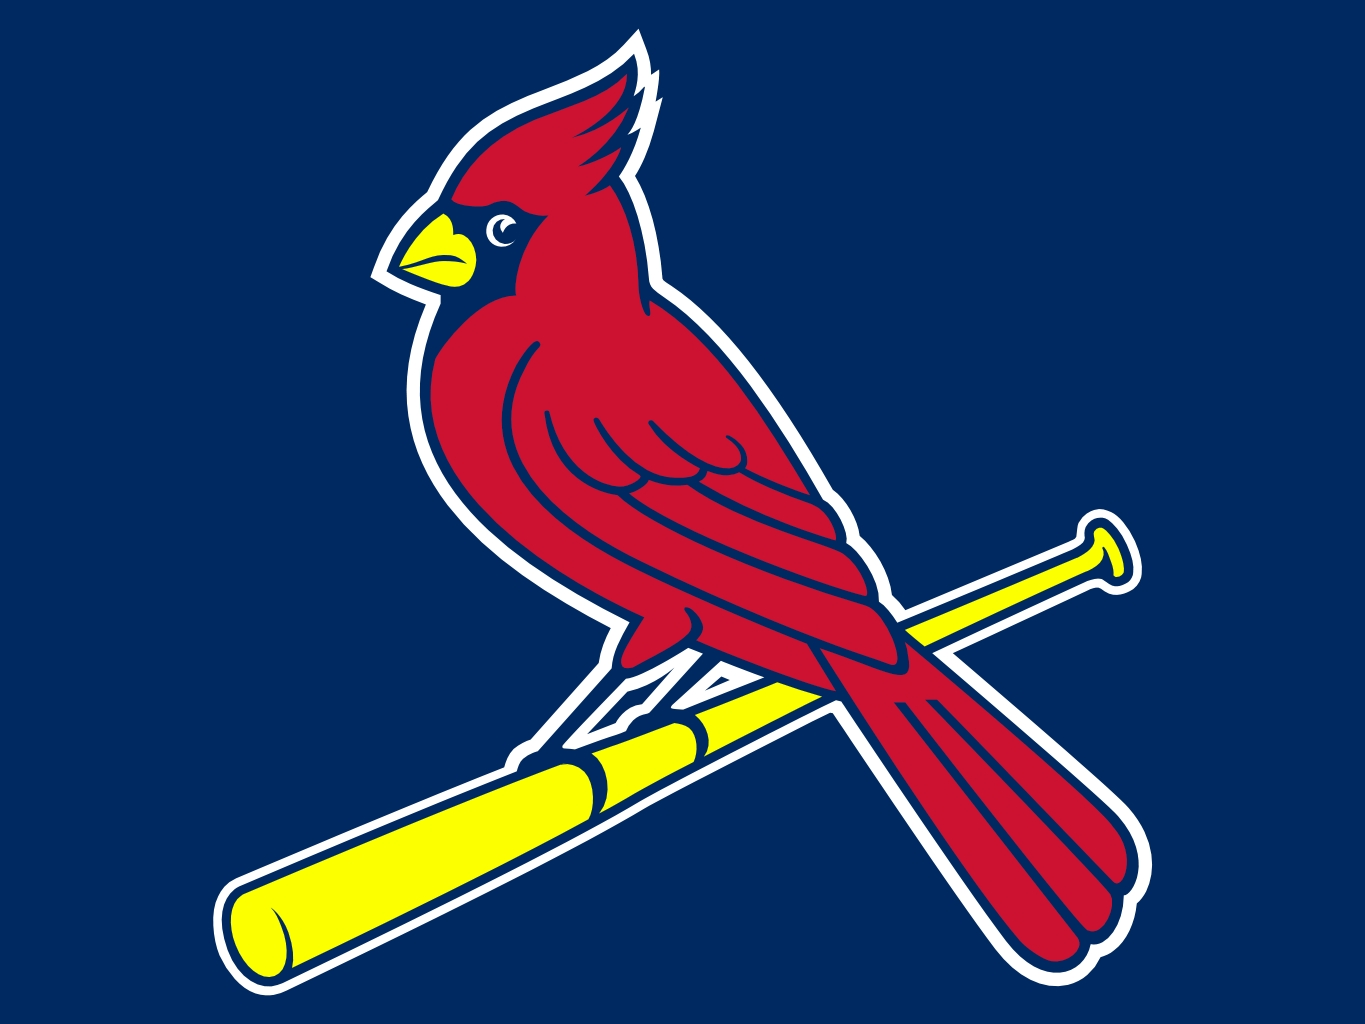 st louis cardinals Get the latest st louis cardinals news, photos, rankings, lists and more on bleacher report.